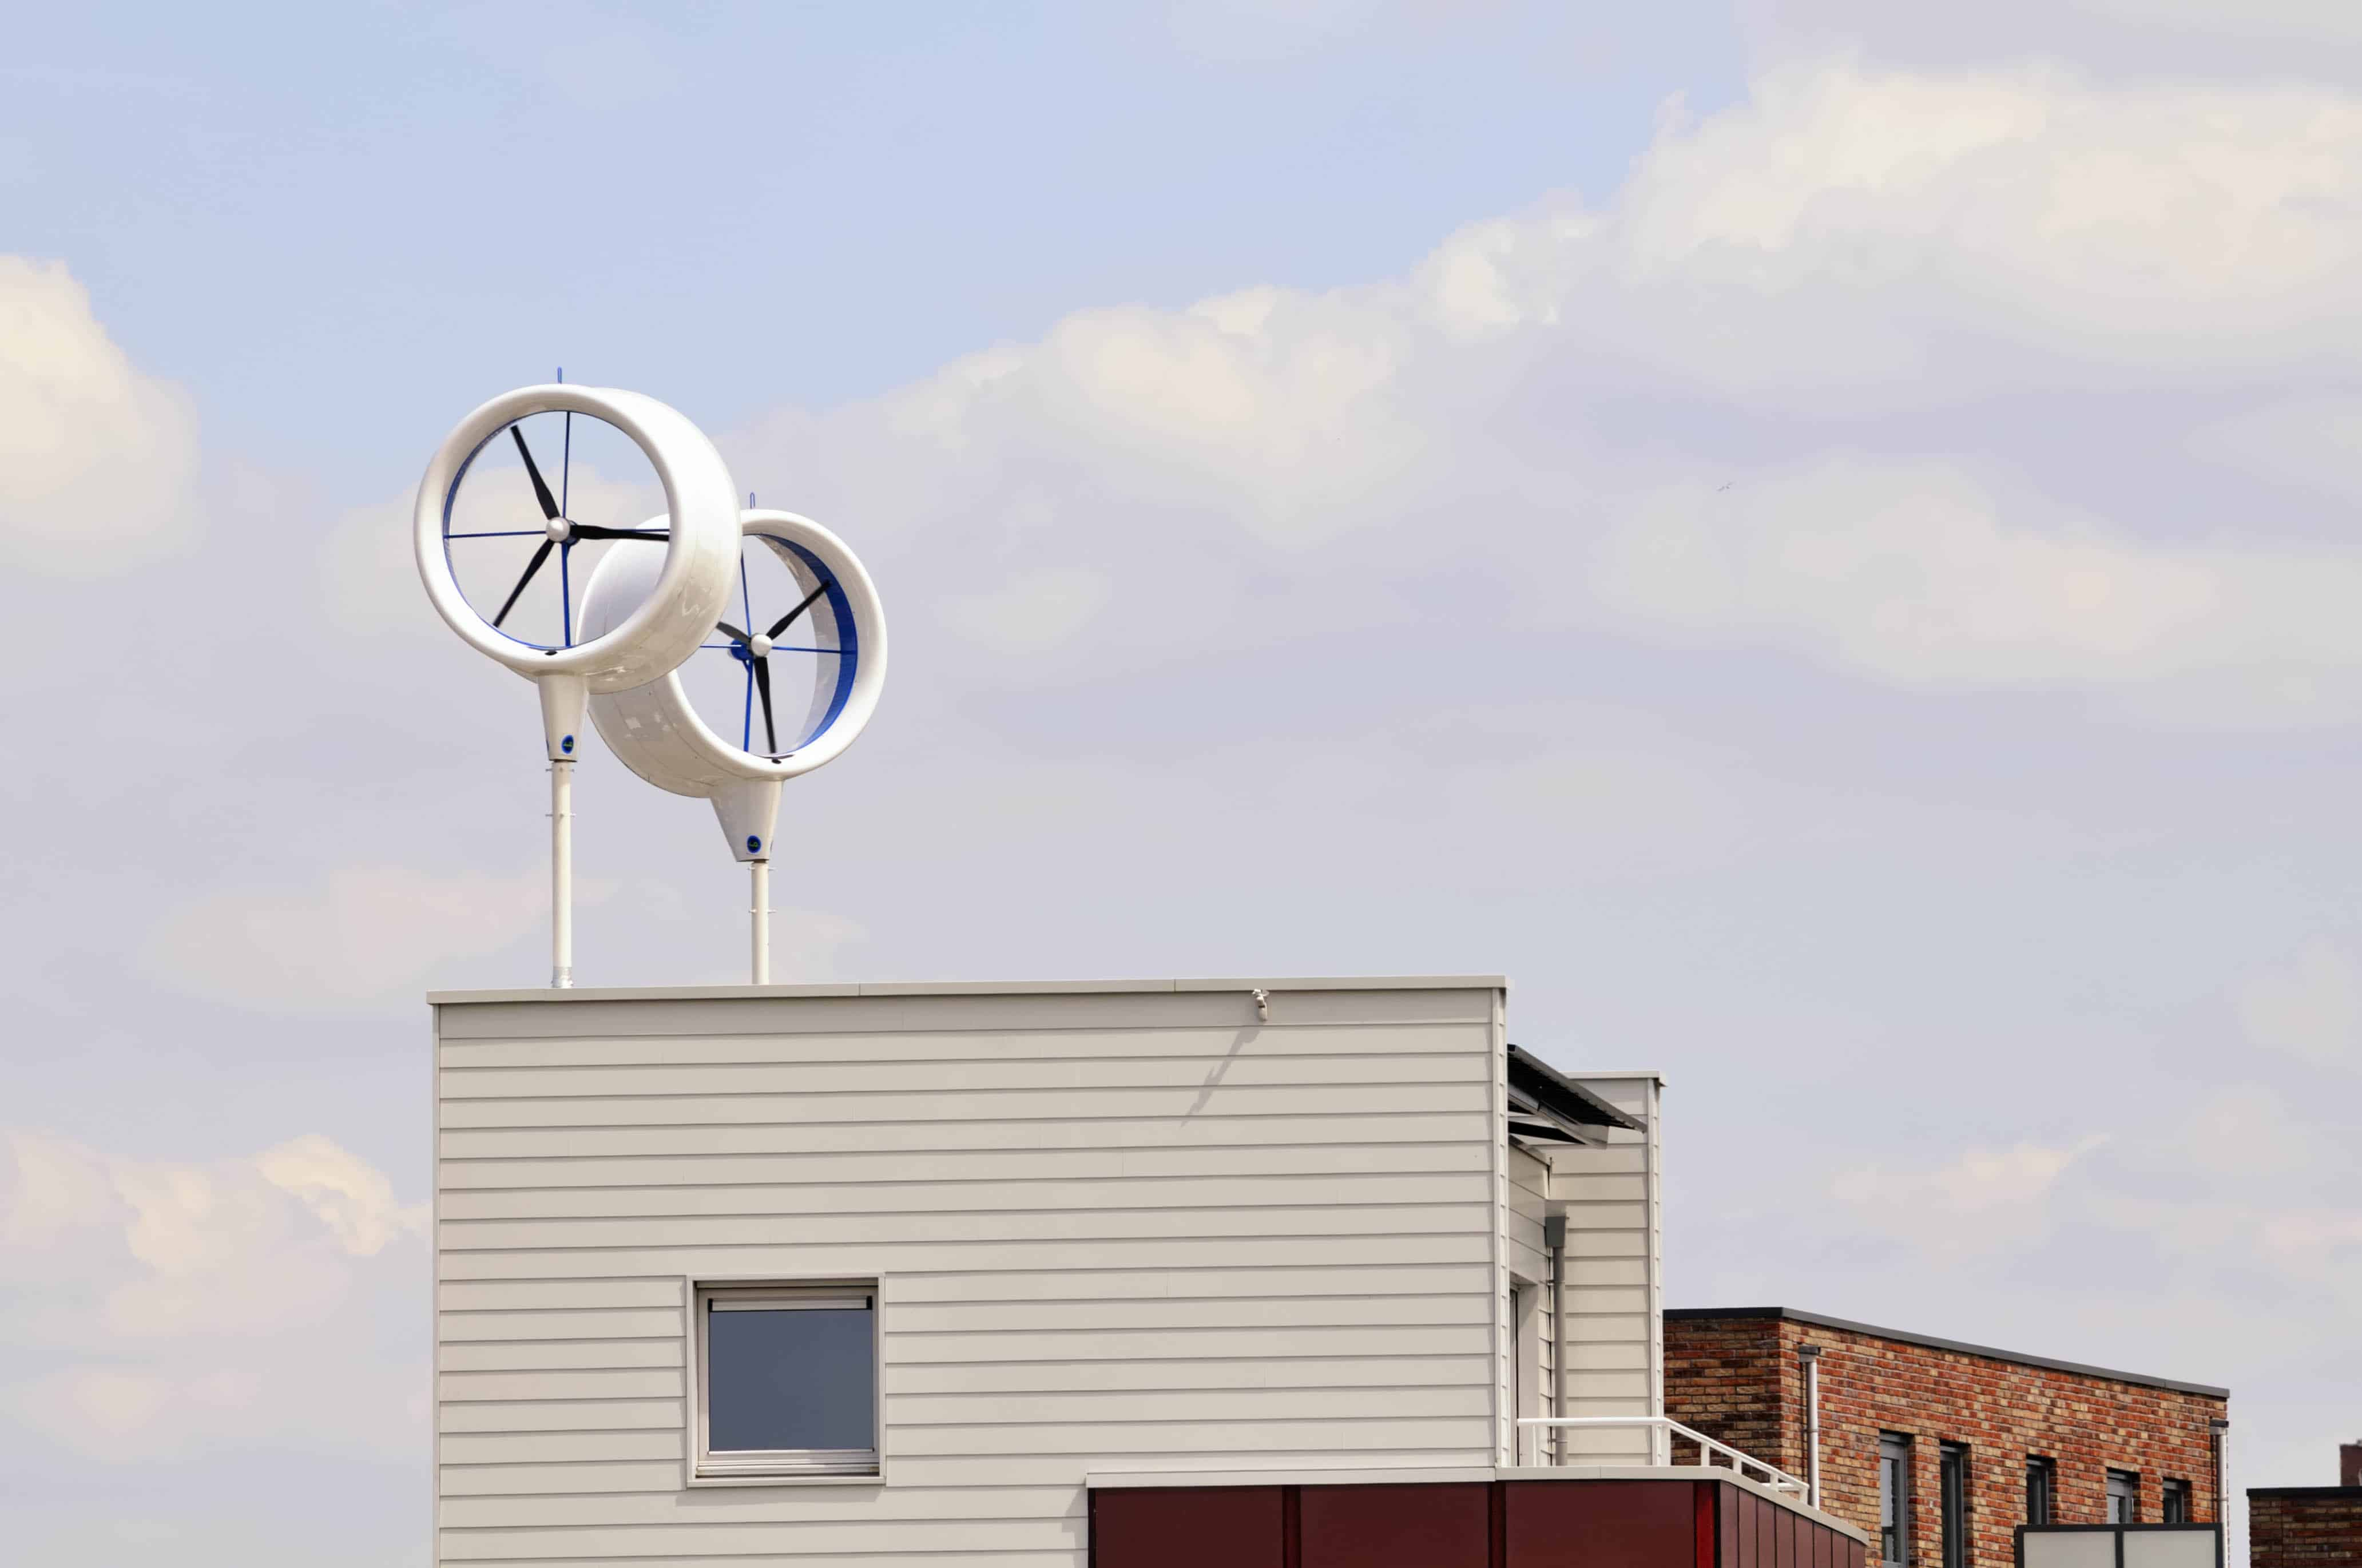 Residential Wind Turbines - Clean Energy Ideas